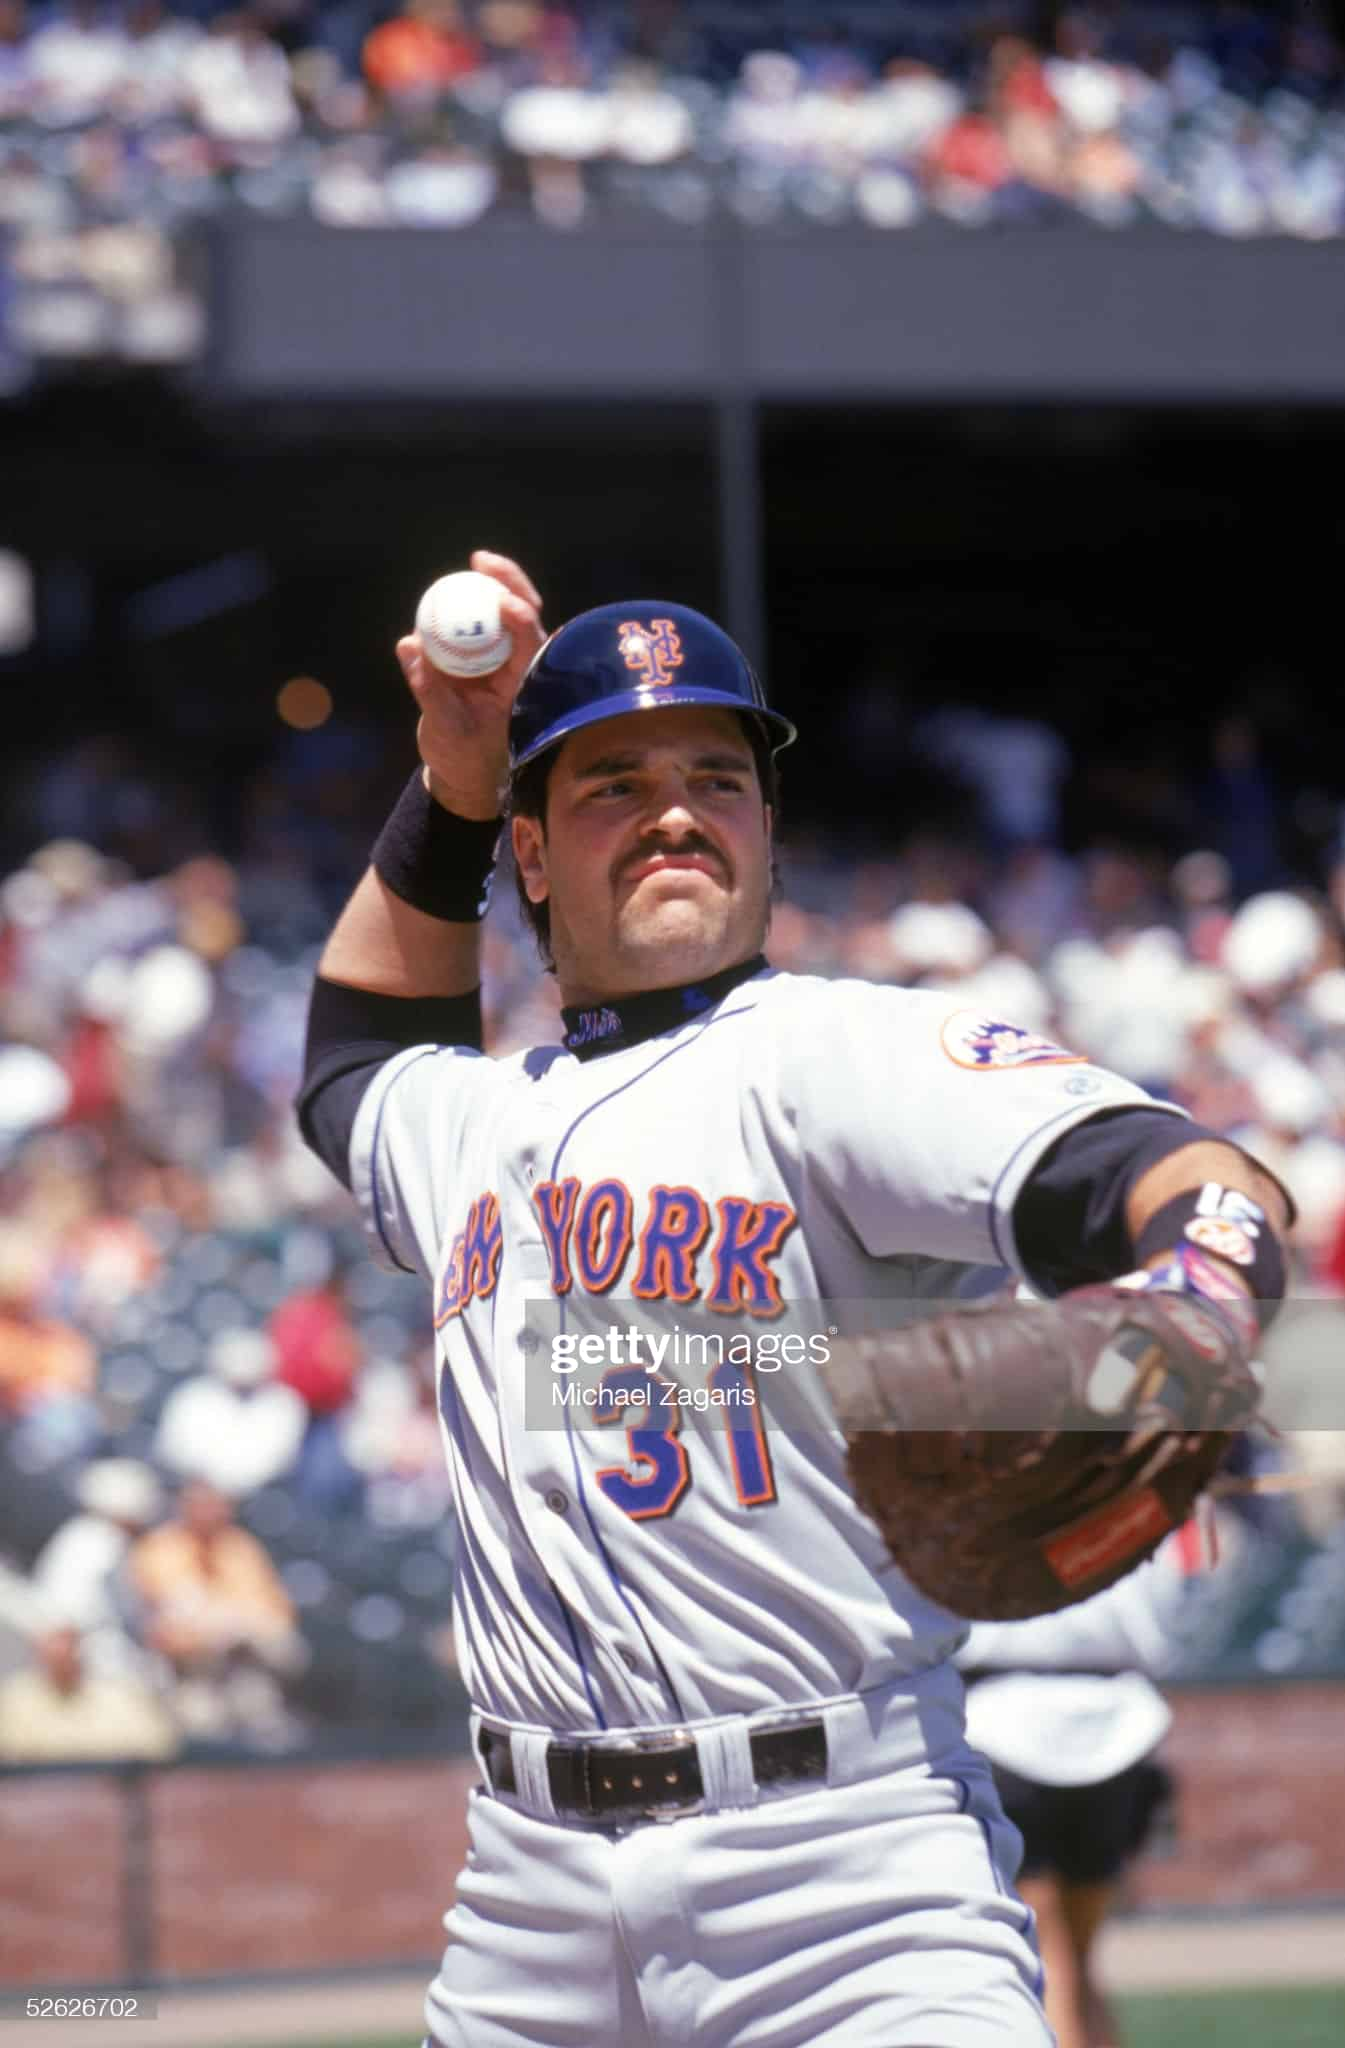 Former New York Mets catcher Mike Piazza warming up before a game against the Giants in San Francisco